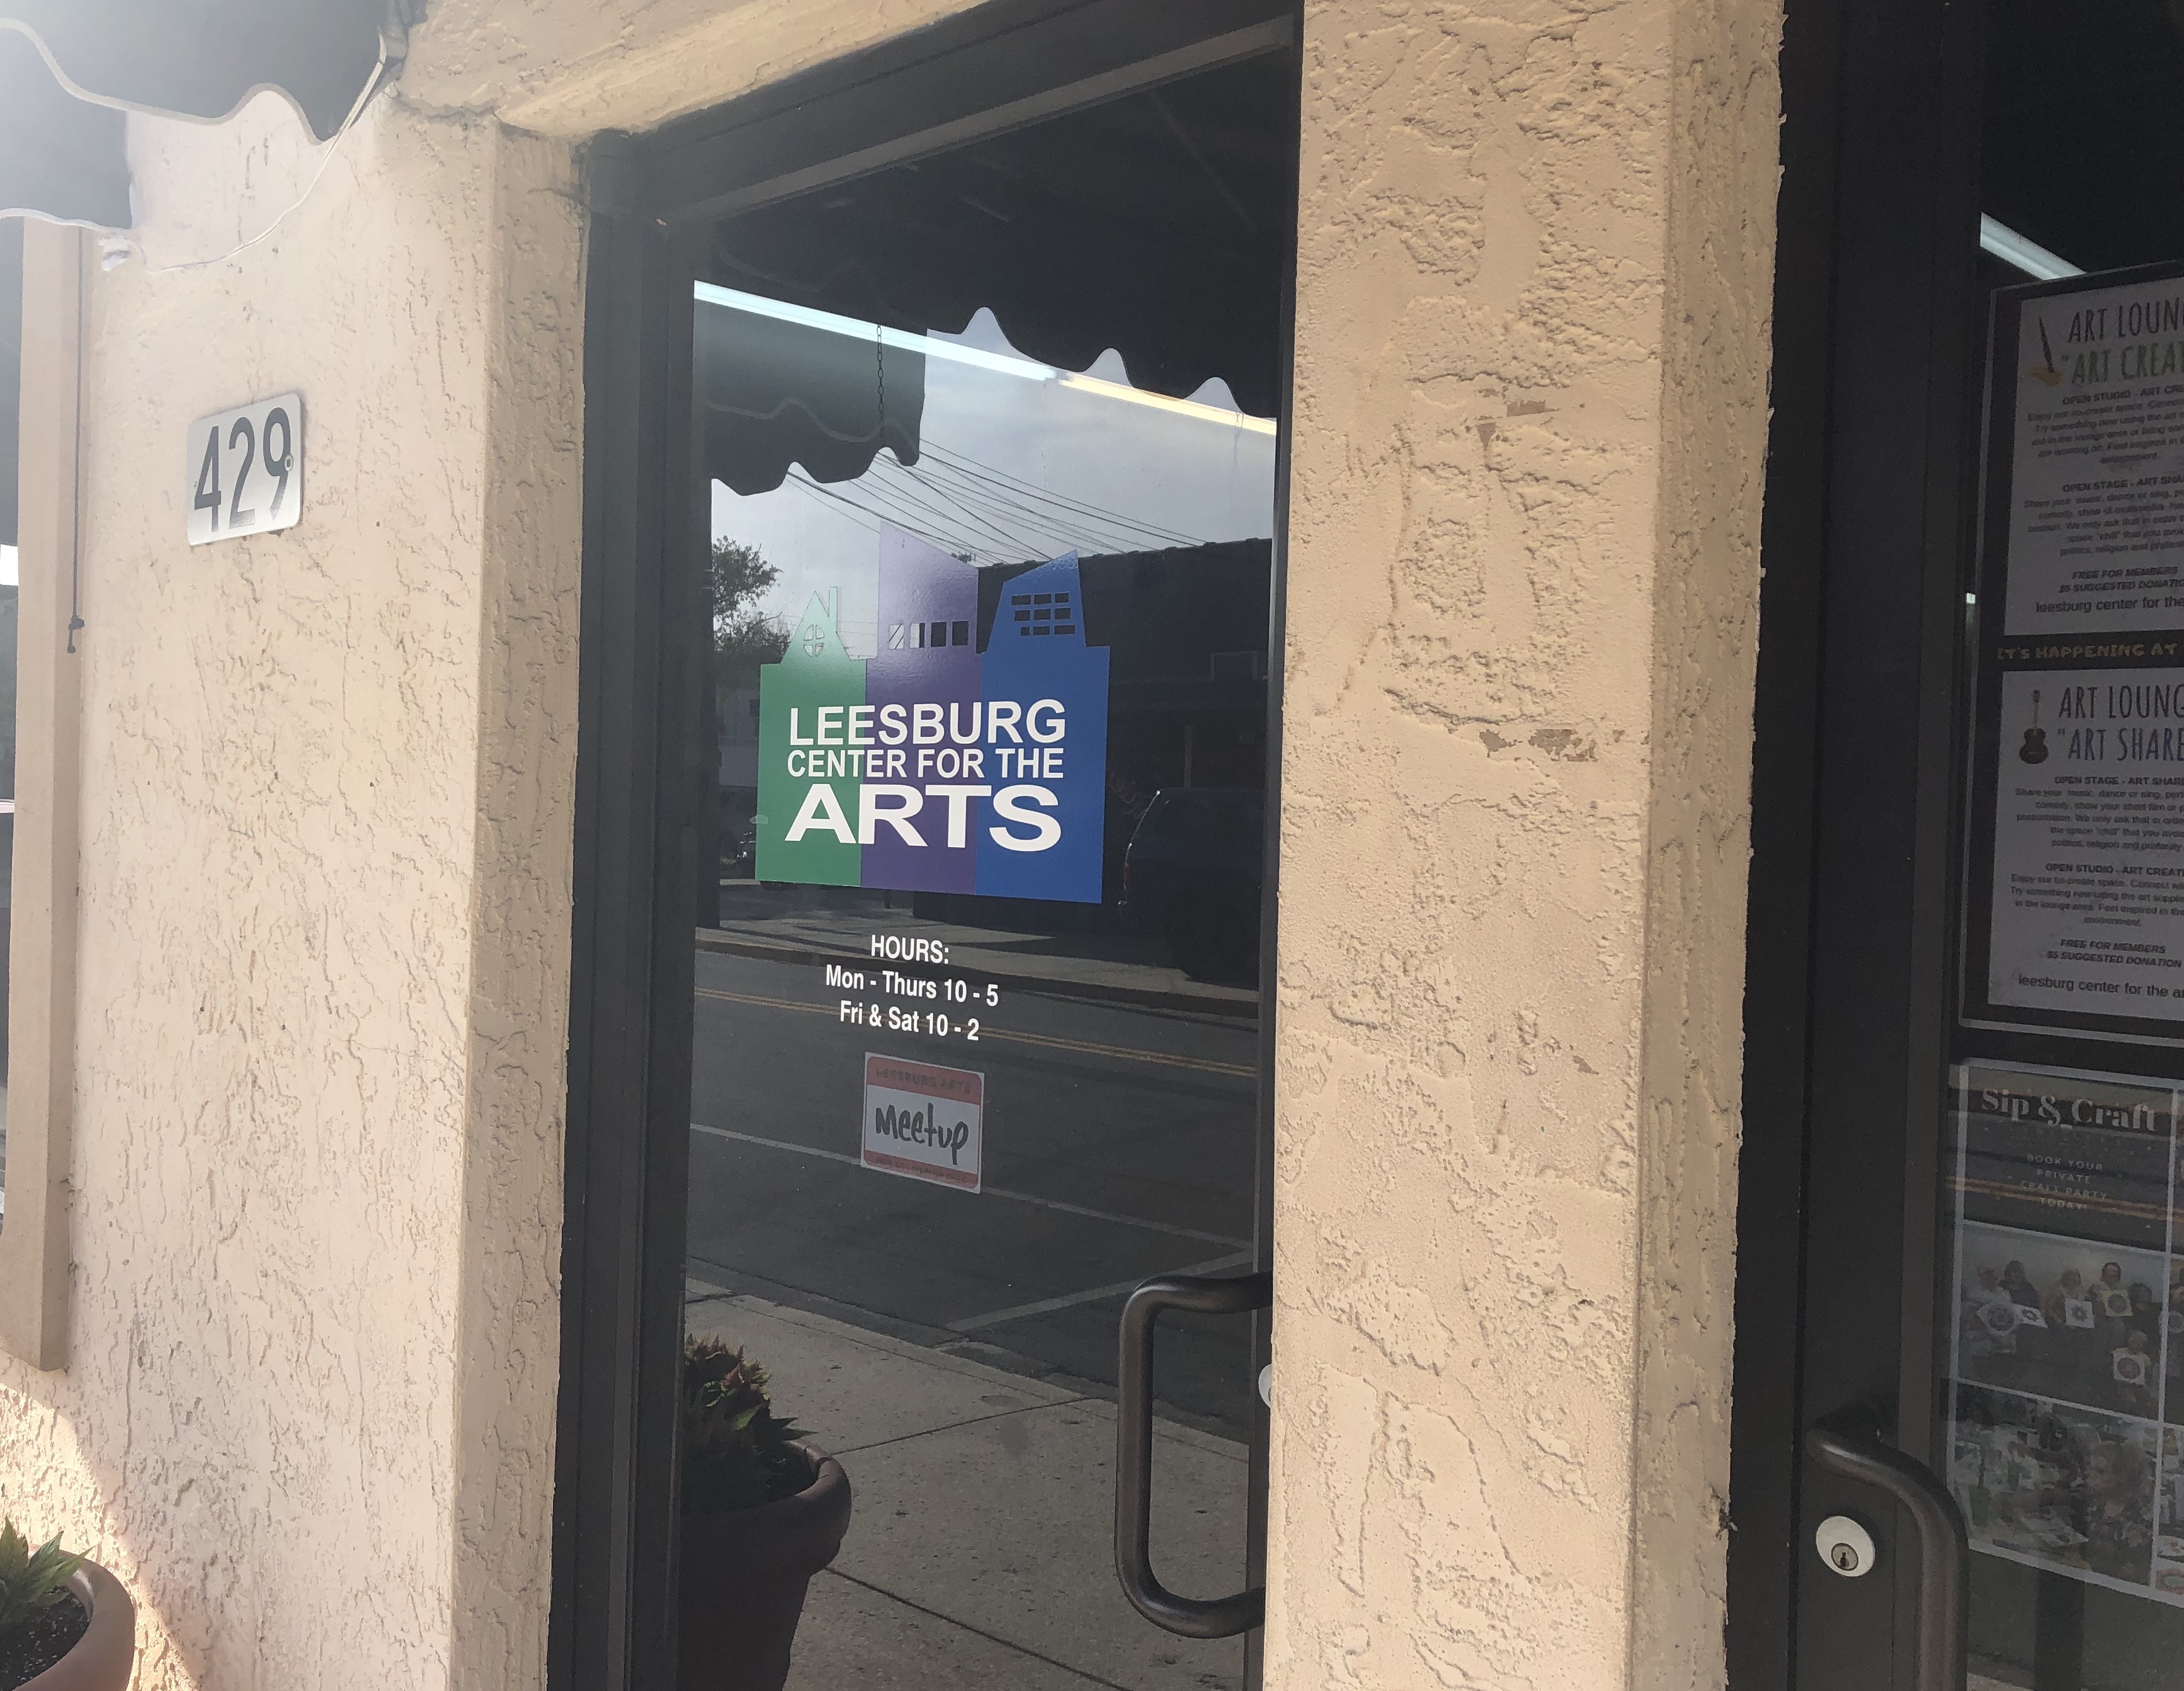 Leesburg Center for the Arts_downtown leesburg, fl